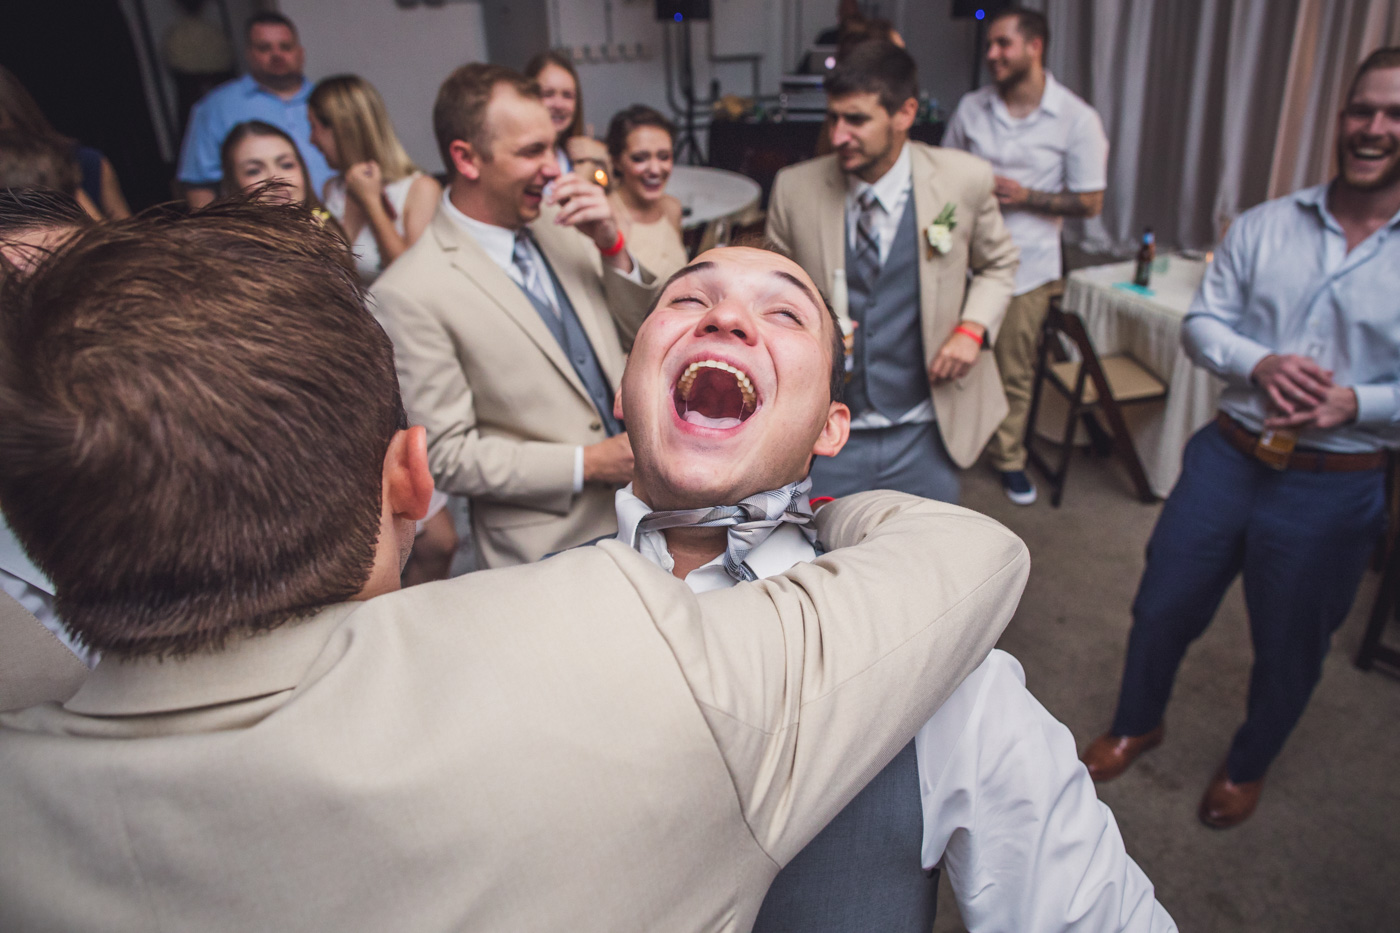 guest-having-fun-at-wedding-the-croft